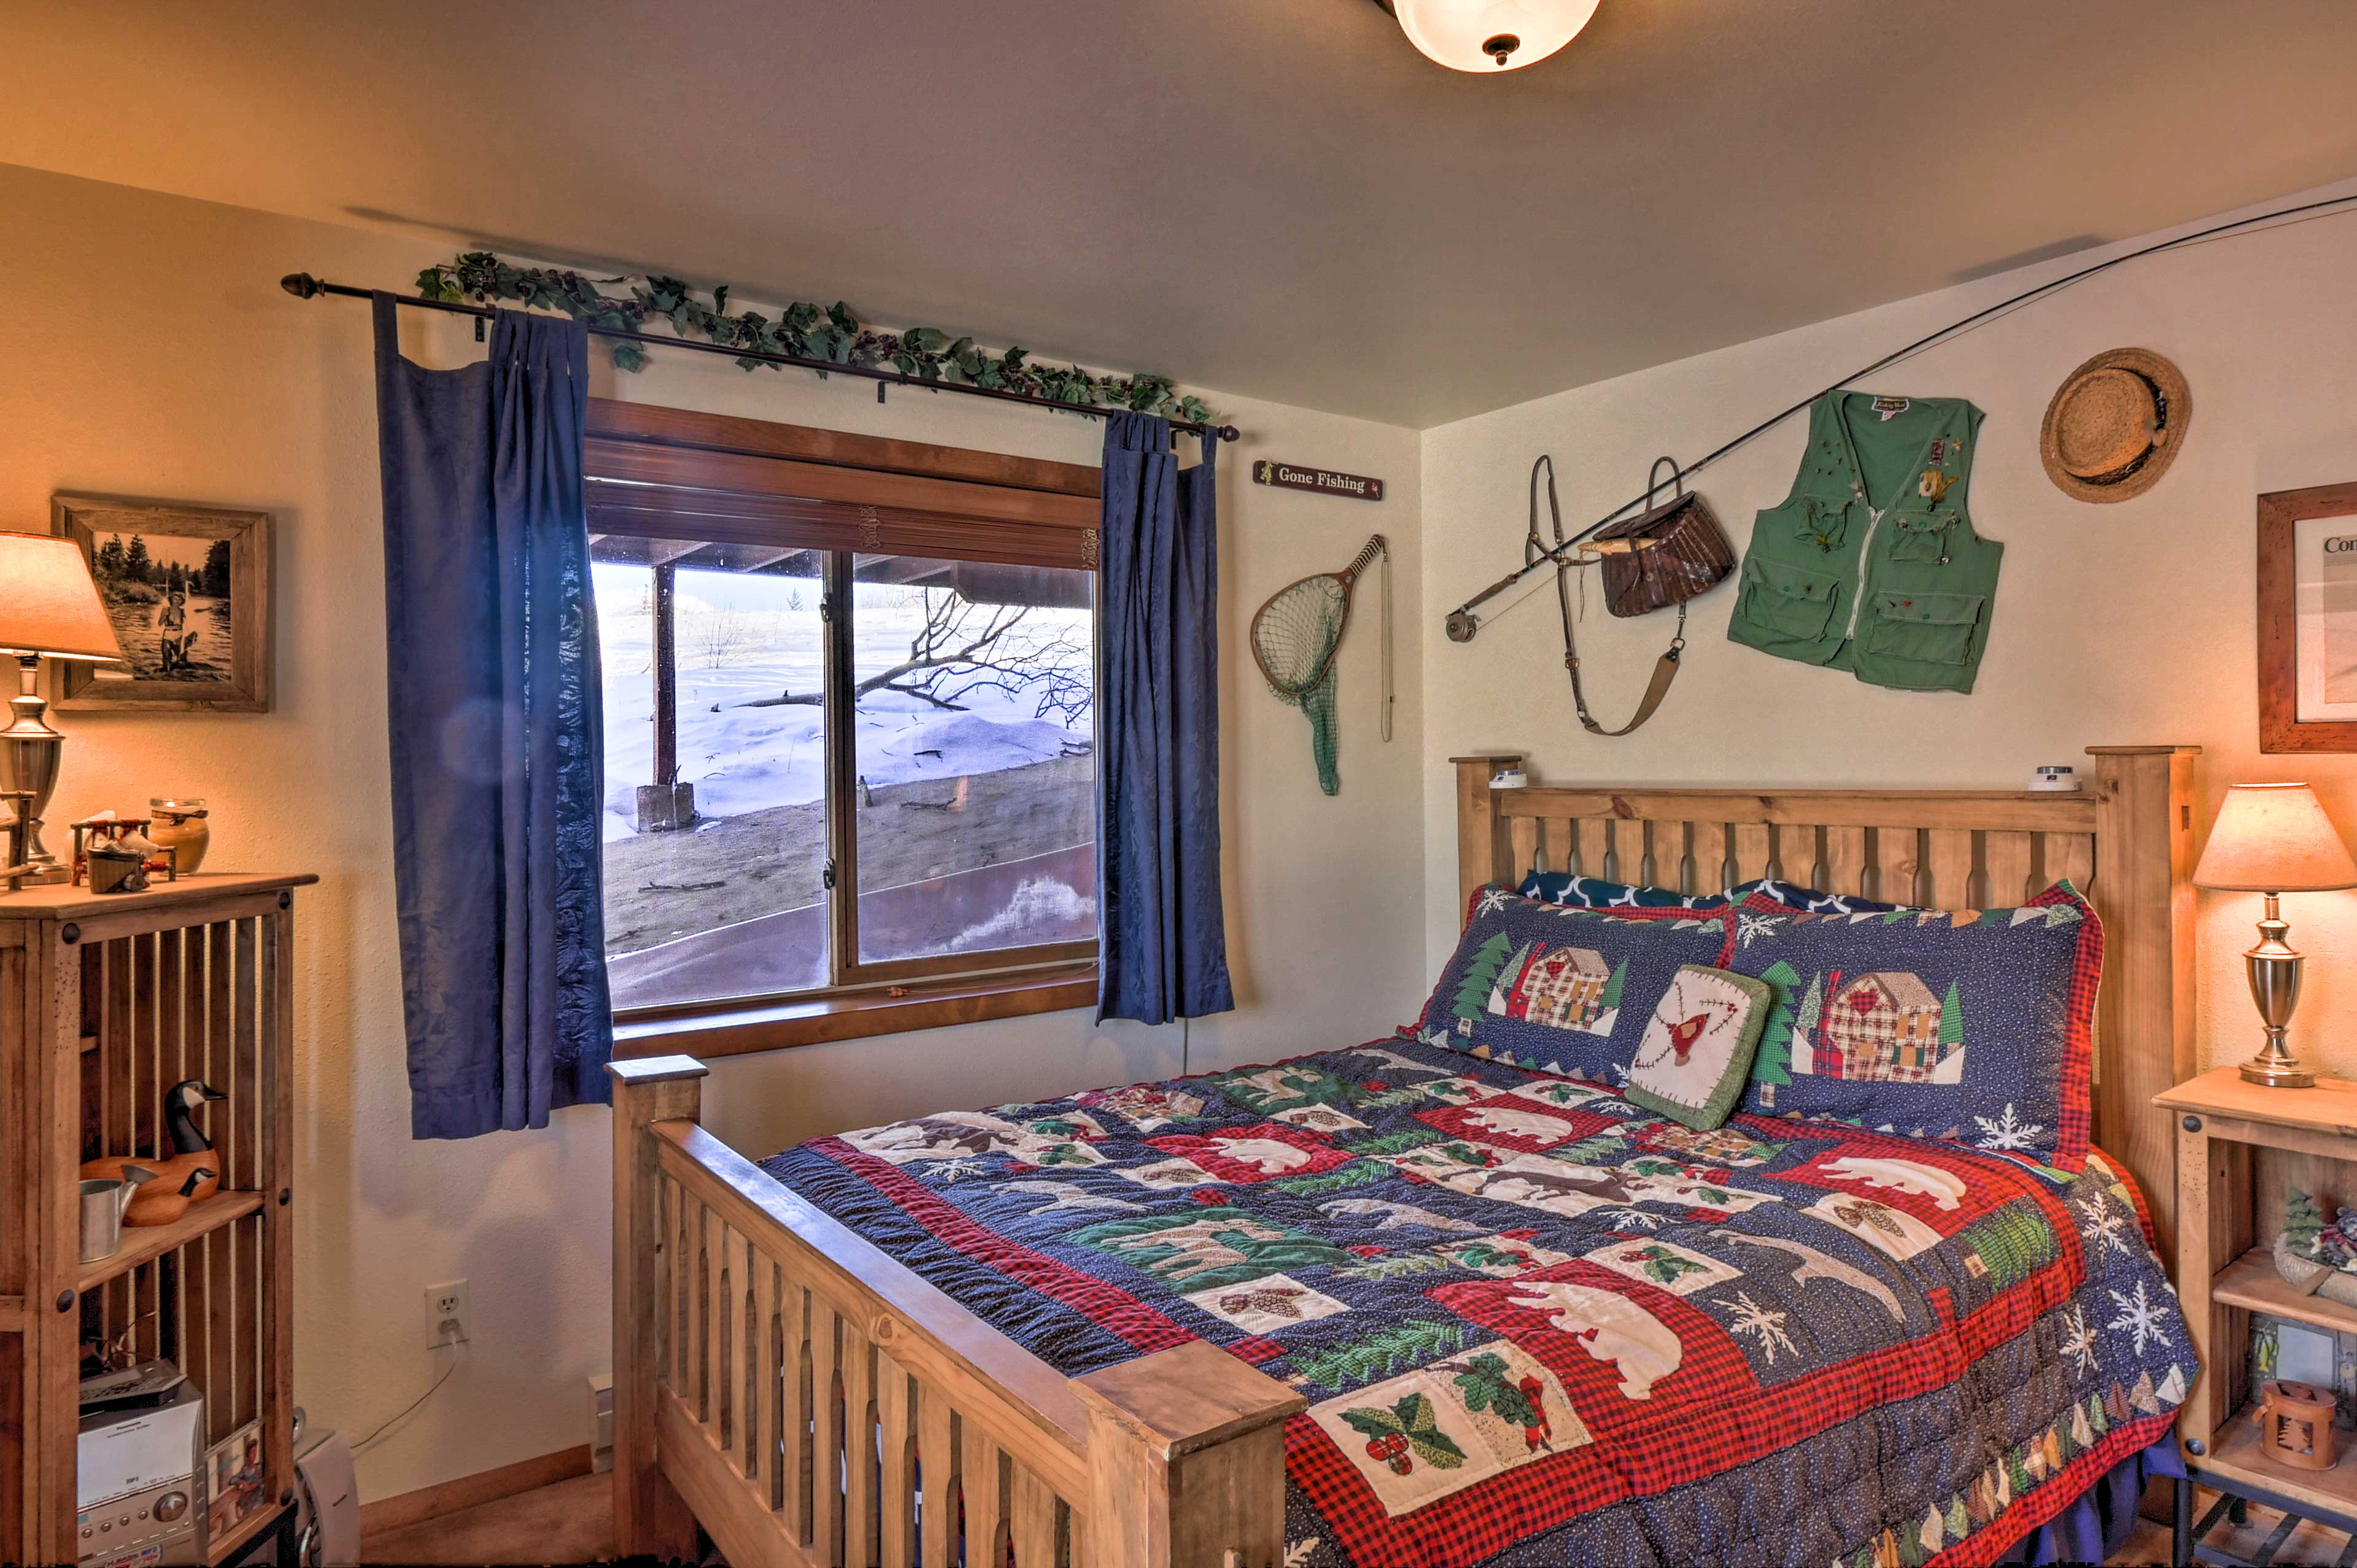 Sleep soundly in this cozy bedroom.